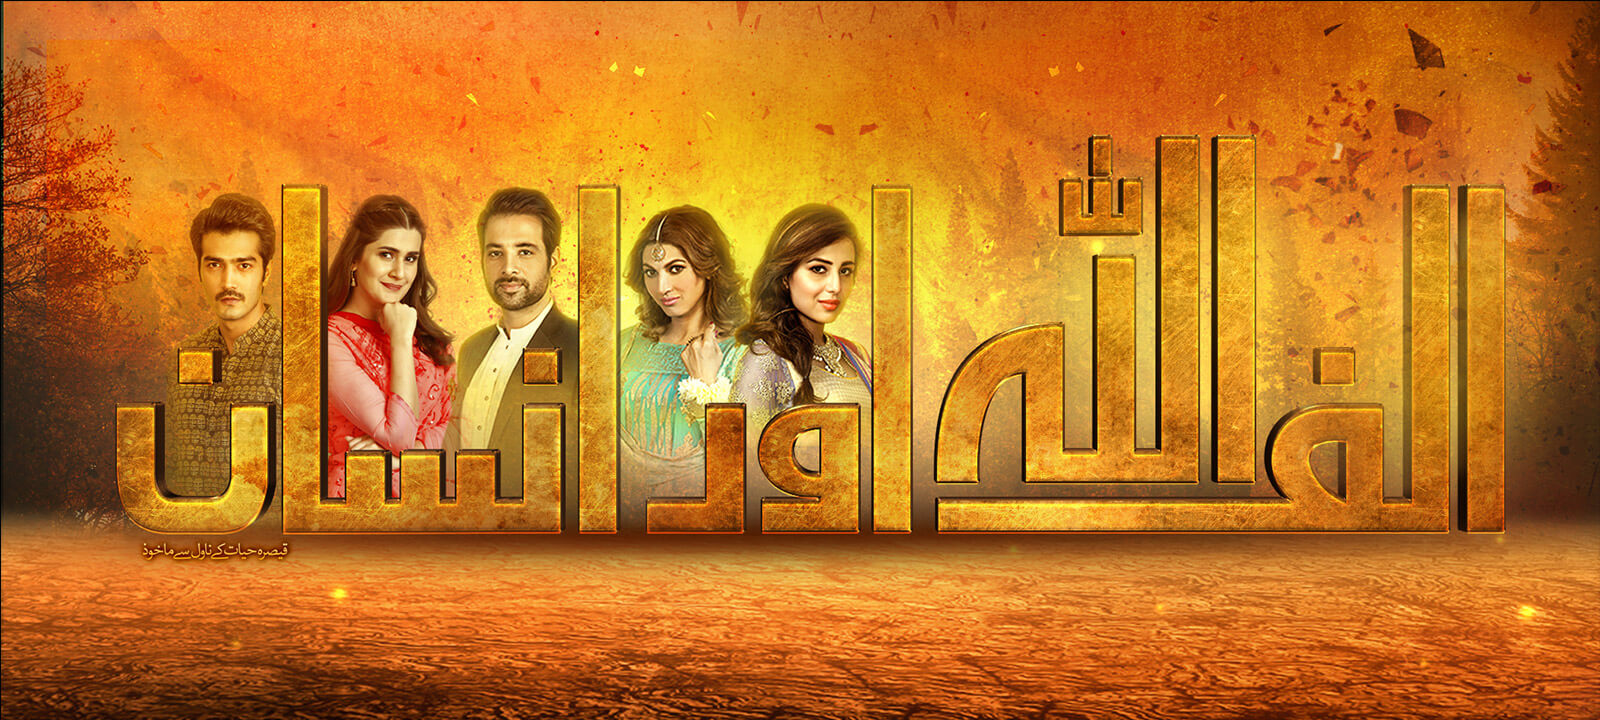 'Alif Allah Aur Insaan' official poster depicting the main characters of the show